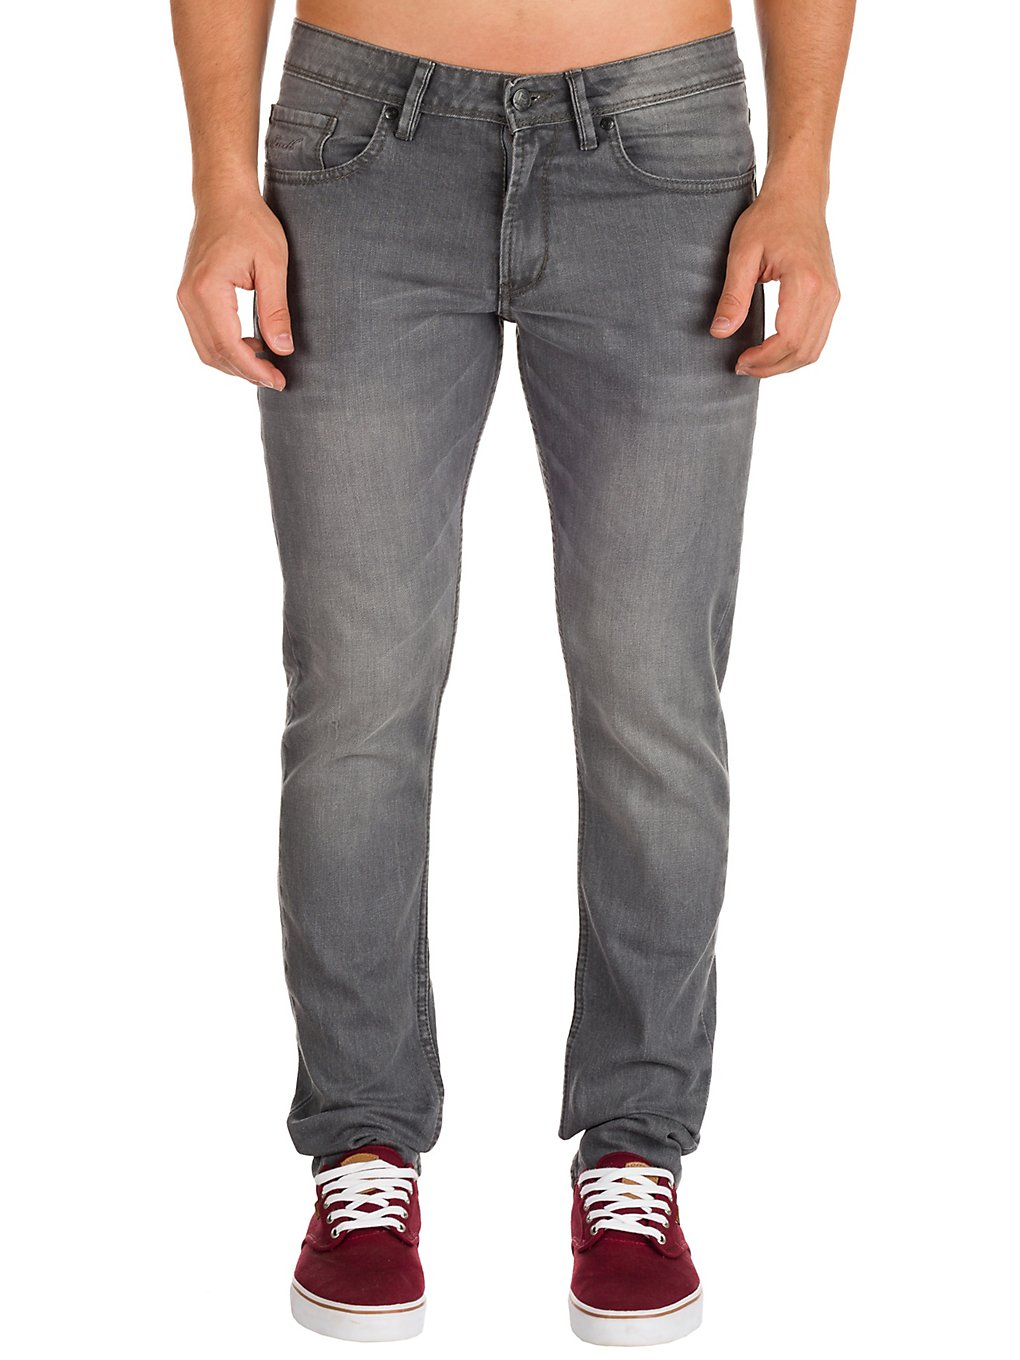 REELL Spider Jeans grey Gr. 32/32